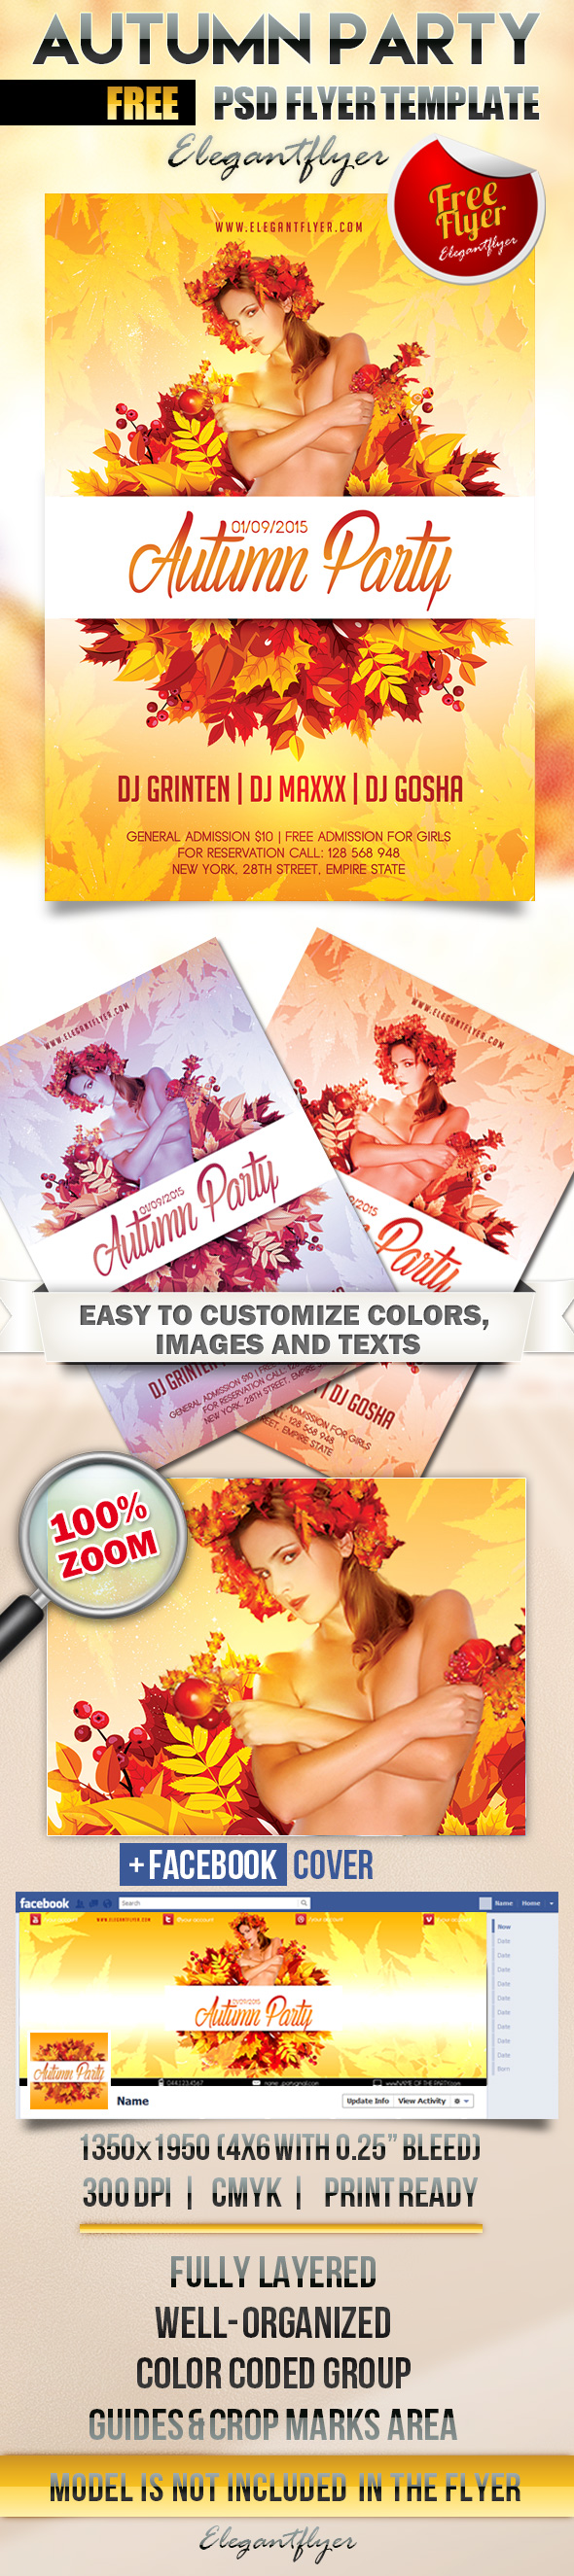 7 Fall Party Flyers PSD Images